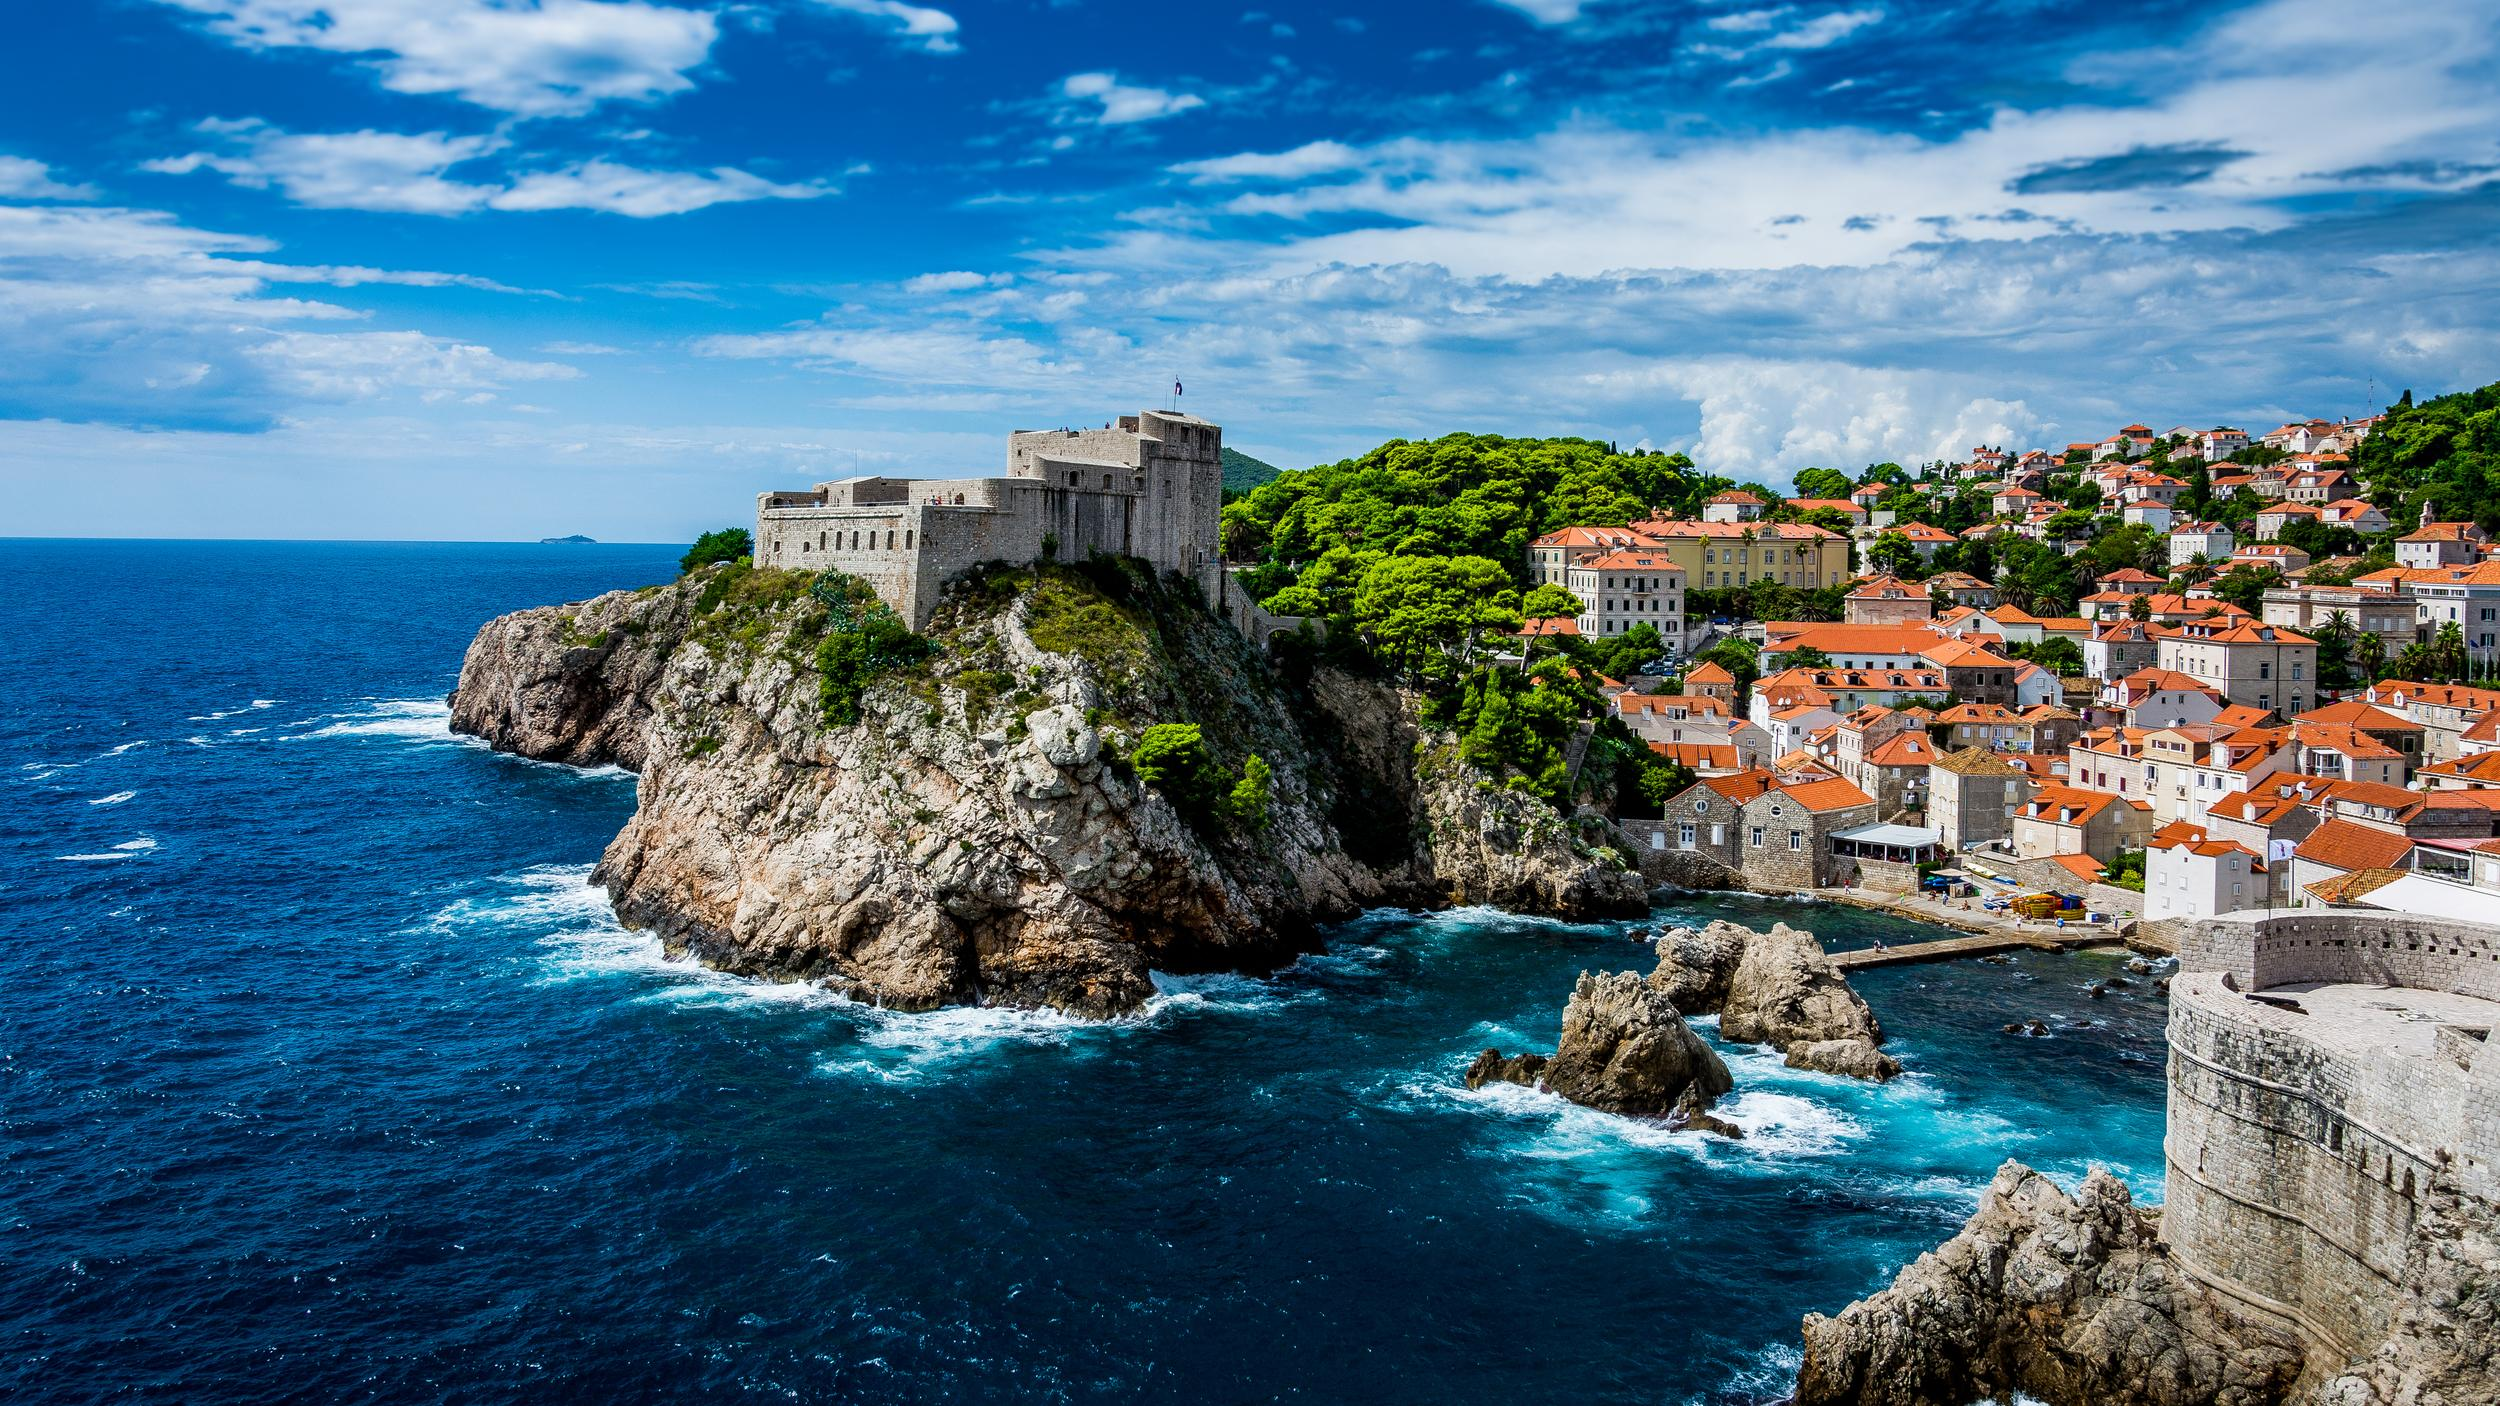 """<p><strong>GOT location</strong>: King's Landing</p>  <p><strong>Real life location</strong>: Dubrovnik, Croatia</p>  <p>Walk in the footsteps of your favorite characters (and your favorite characters to hate) in the stunning town of Dubrovnik.</p>  <p><strong><a href=""""https://fave.co/2PgymxZ"""">Book your trip.</a></strong></p>"""